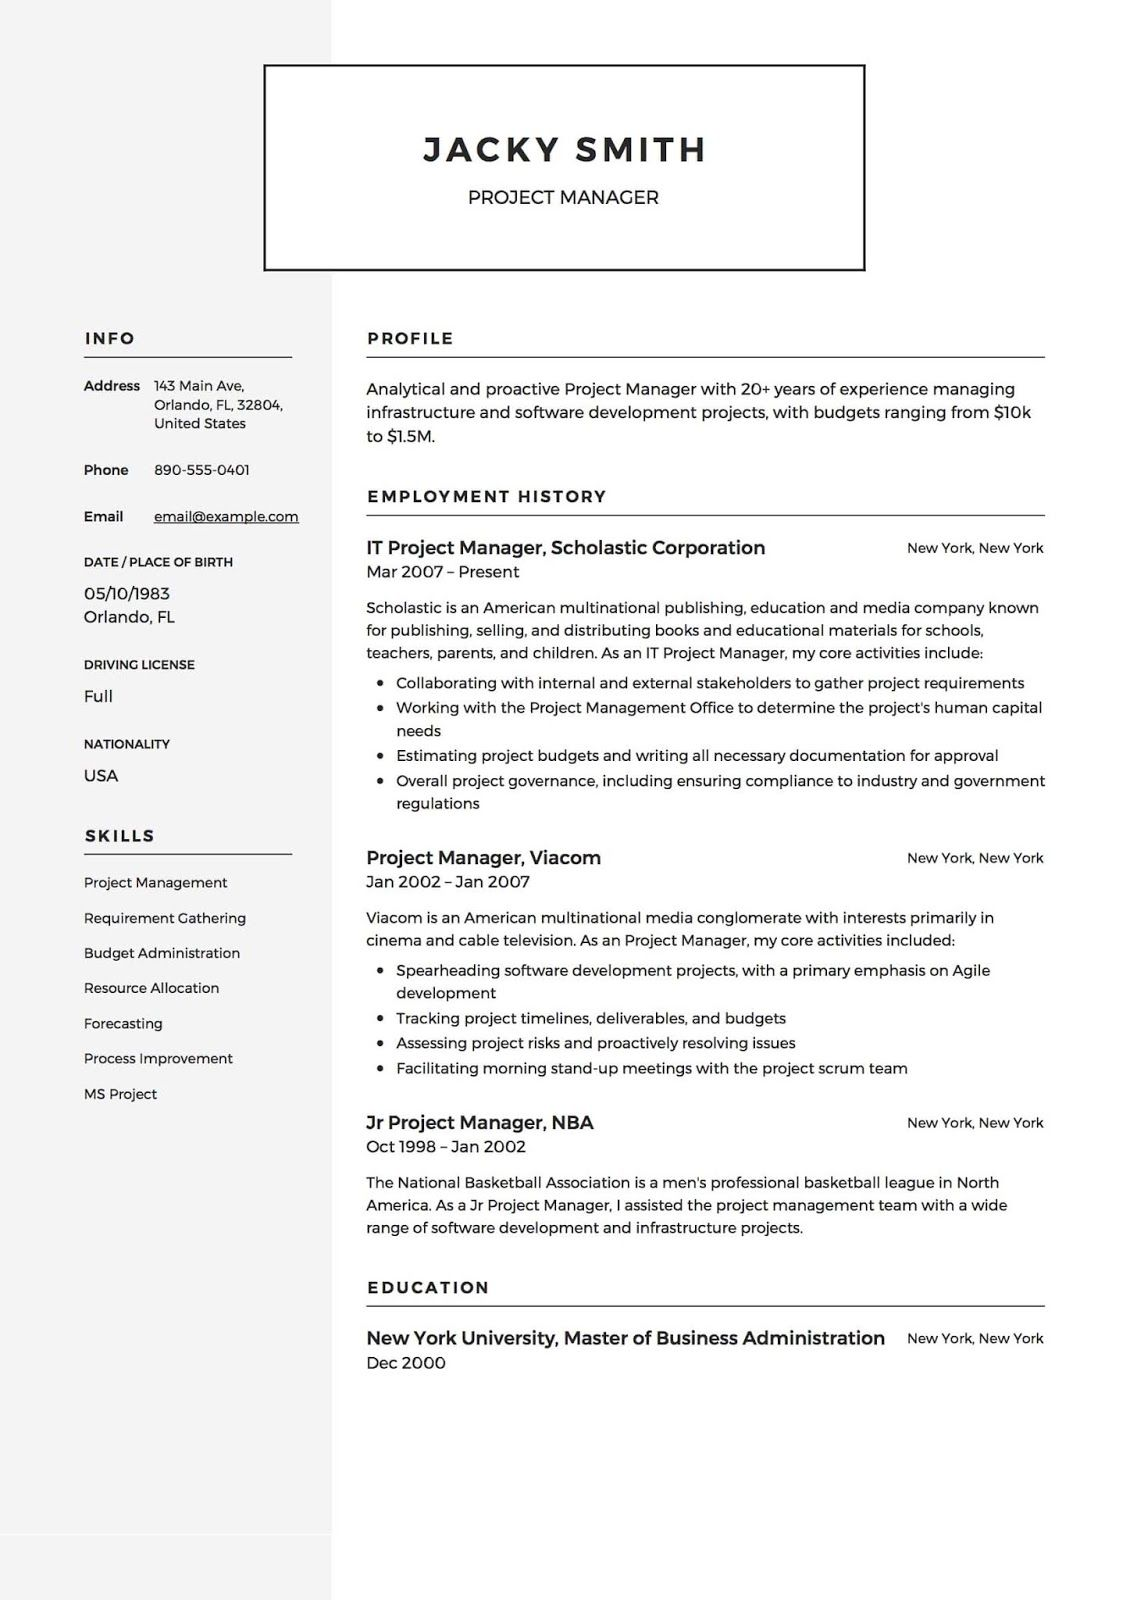 project manager resume templates 2019 2020 project manager